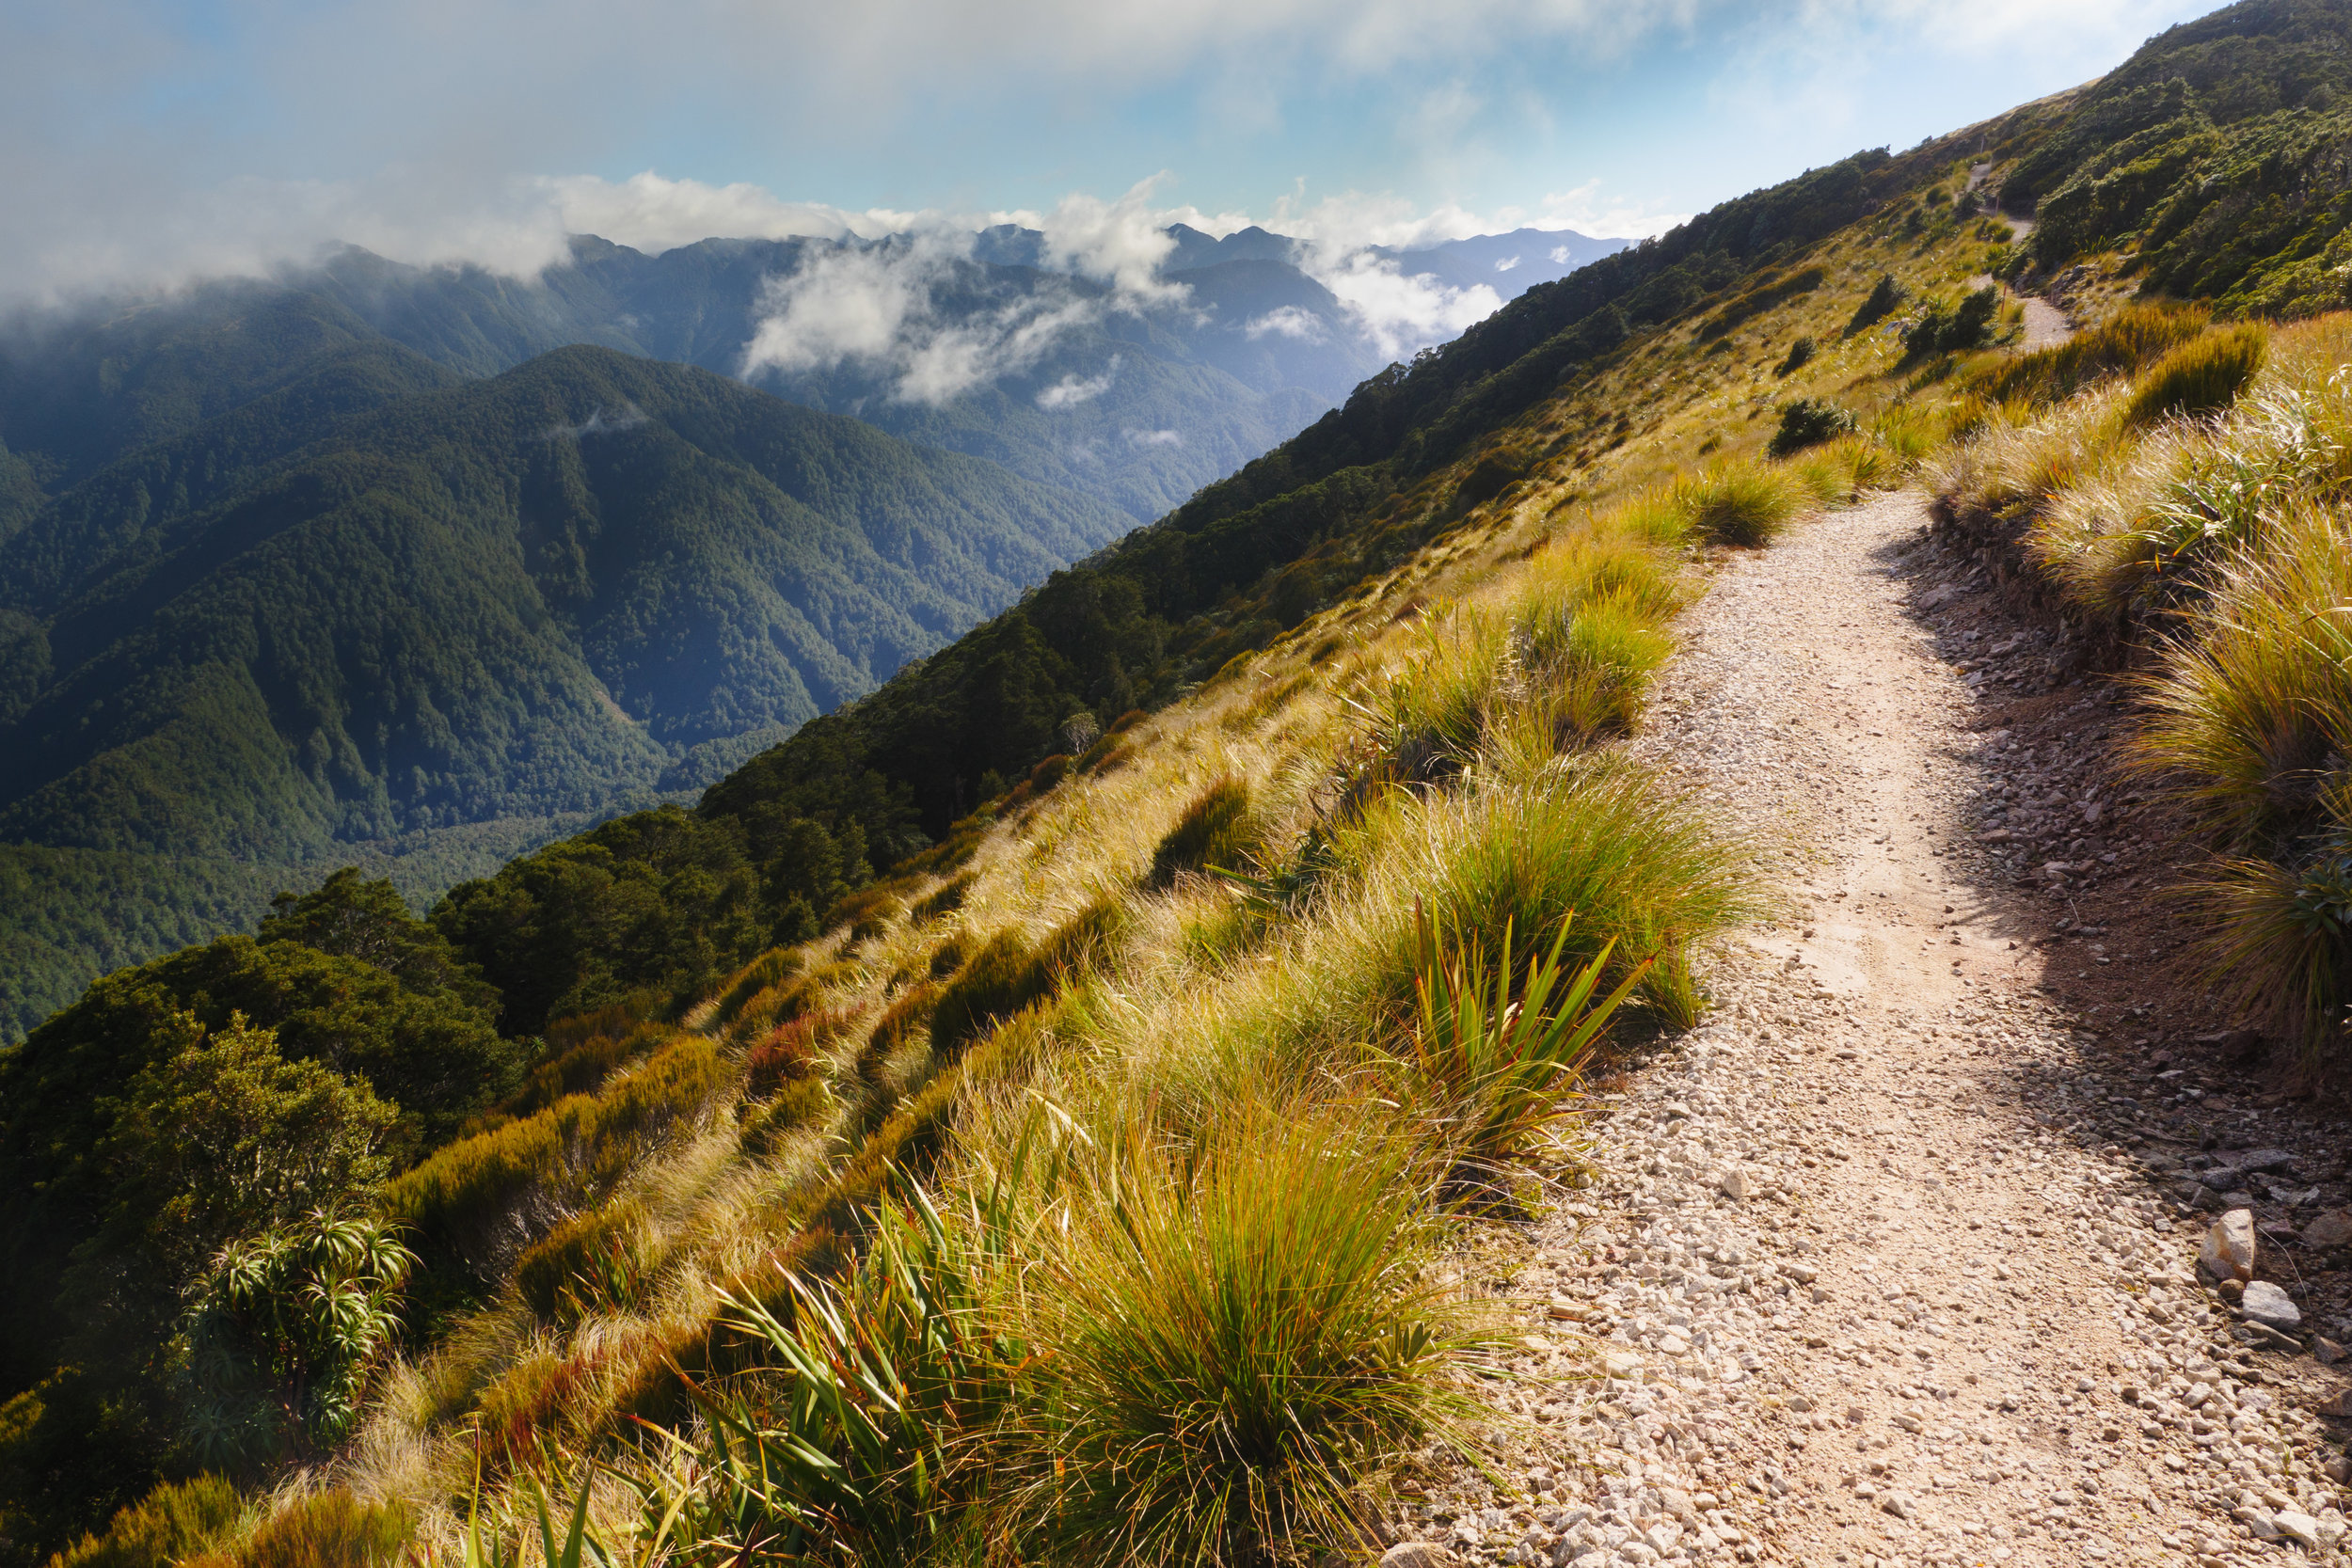 The trail at the top of the ridge above Lyell Saddle Hut